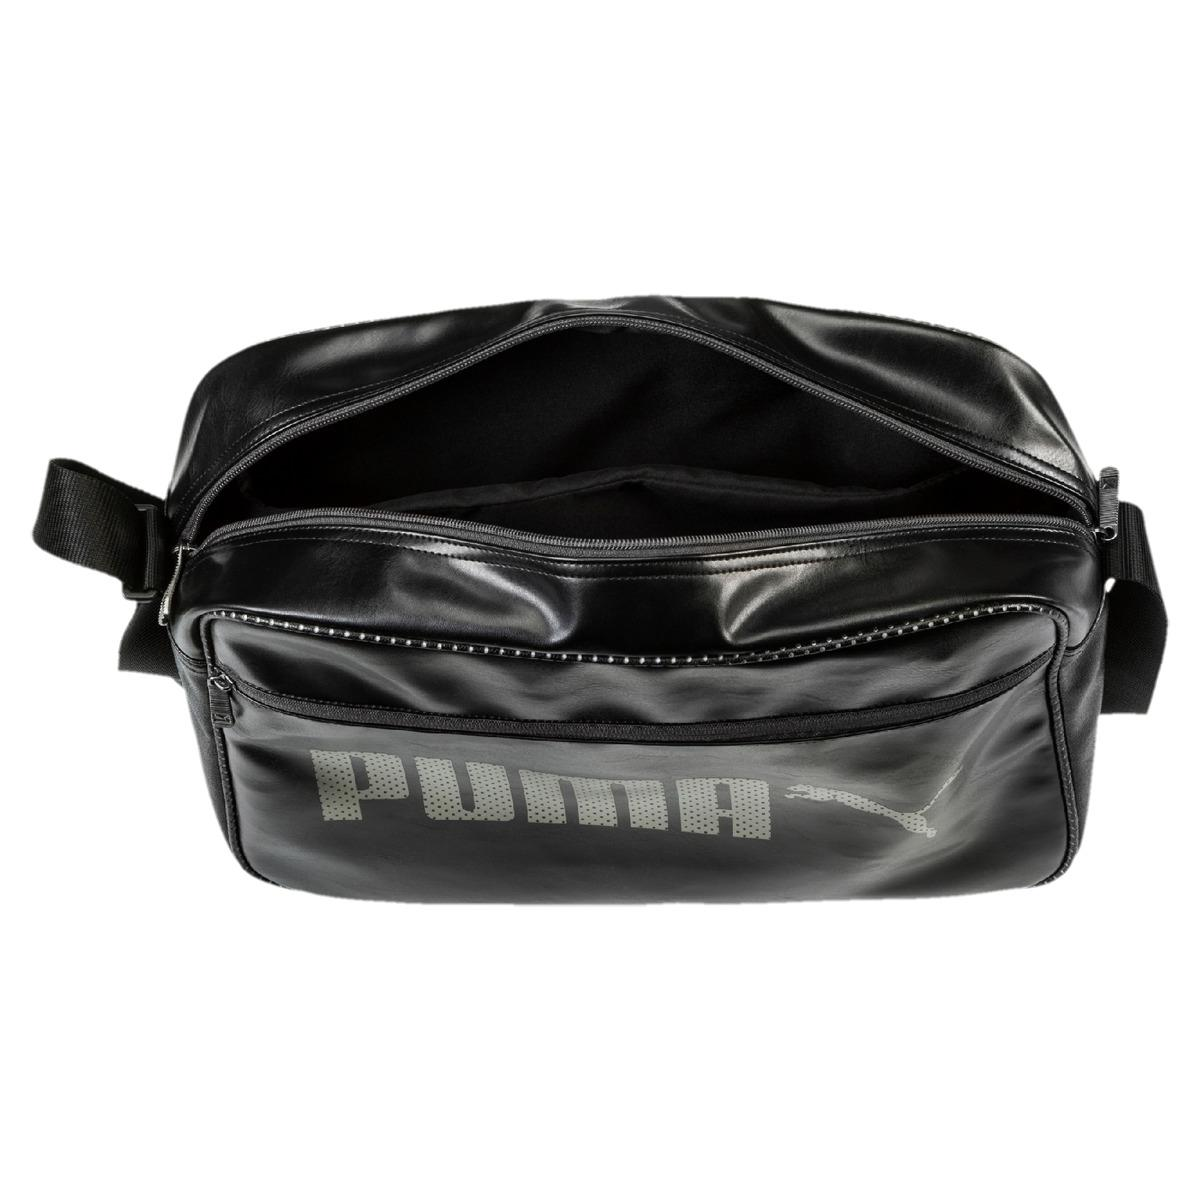 3bc28613764c PUMA Campus Reporter Bag in Black for Men - Lyst